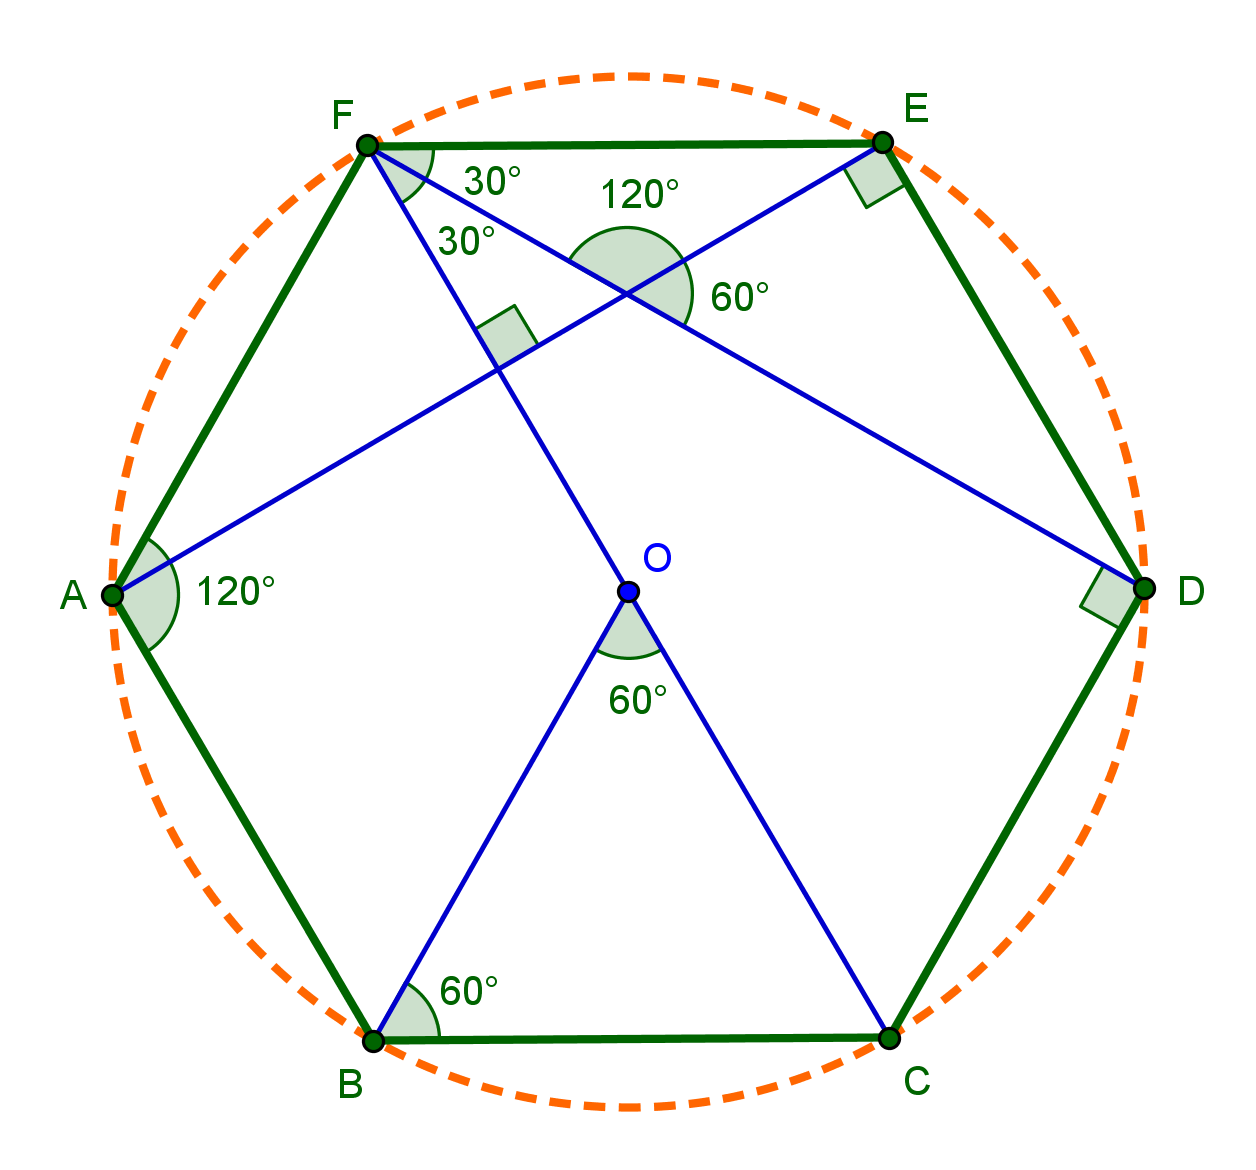 File:Regular hexagon angles.png